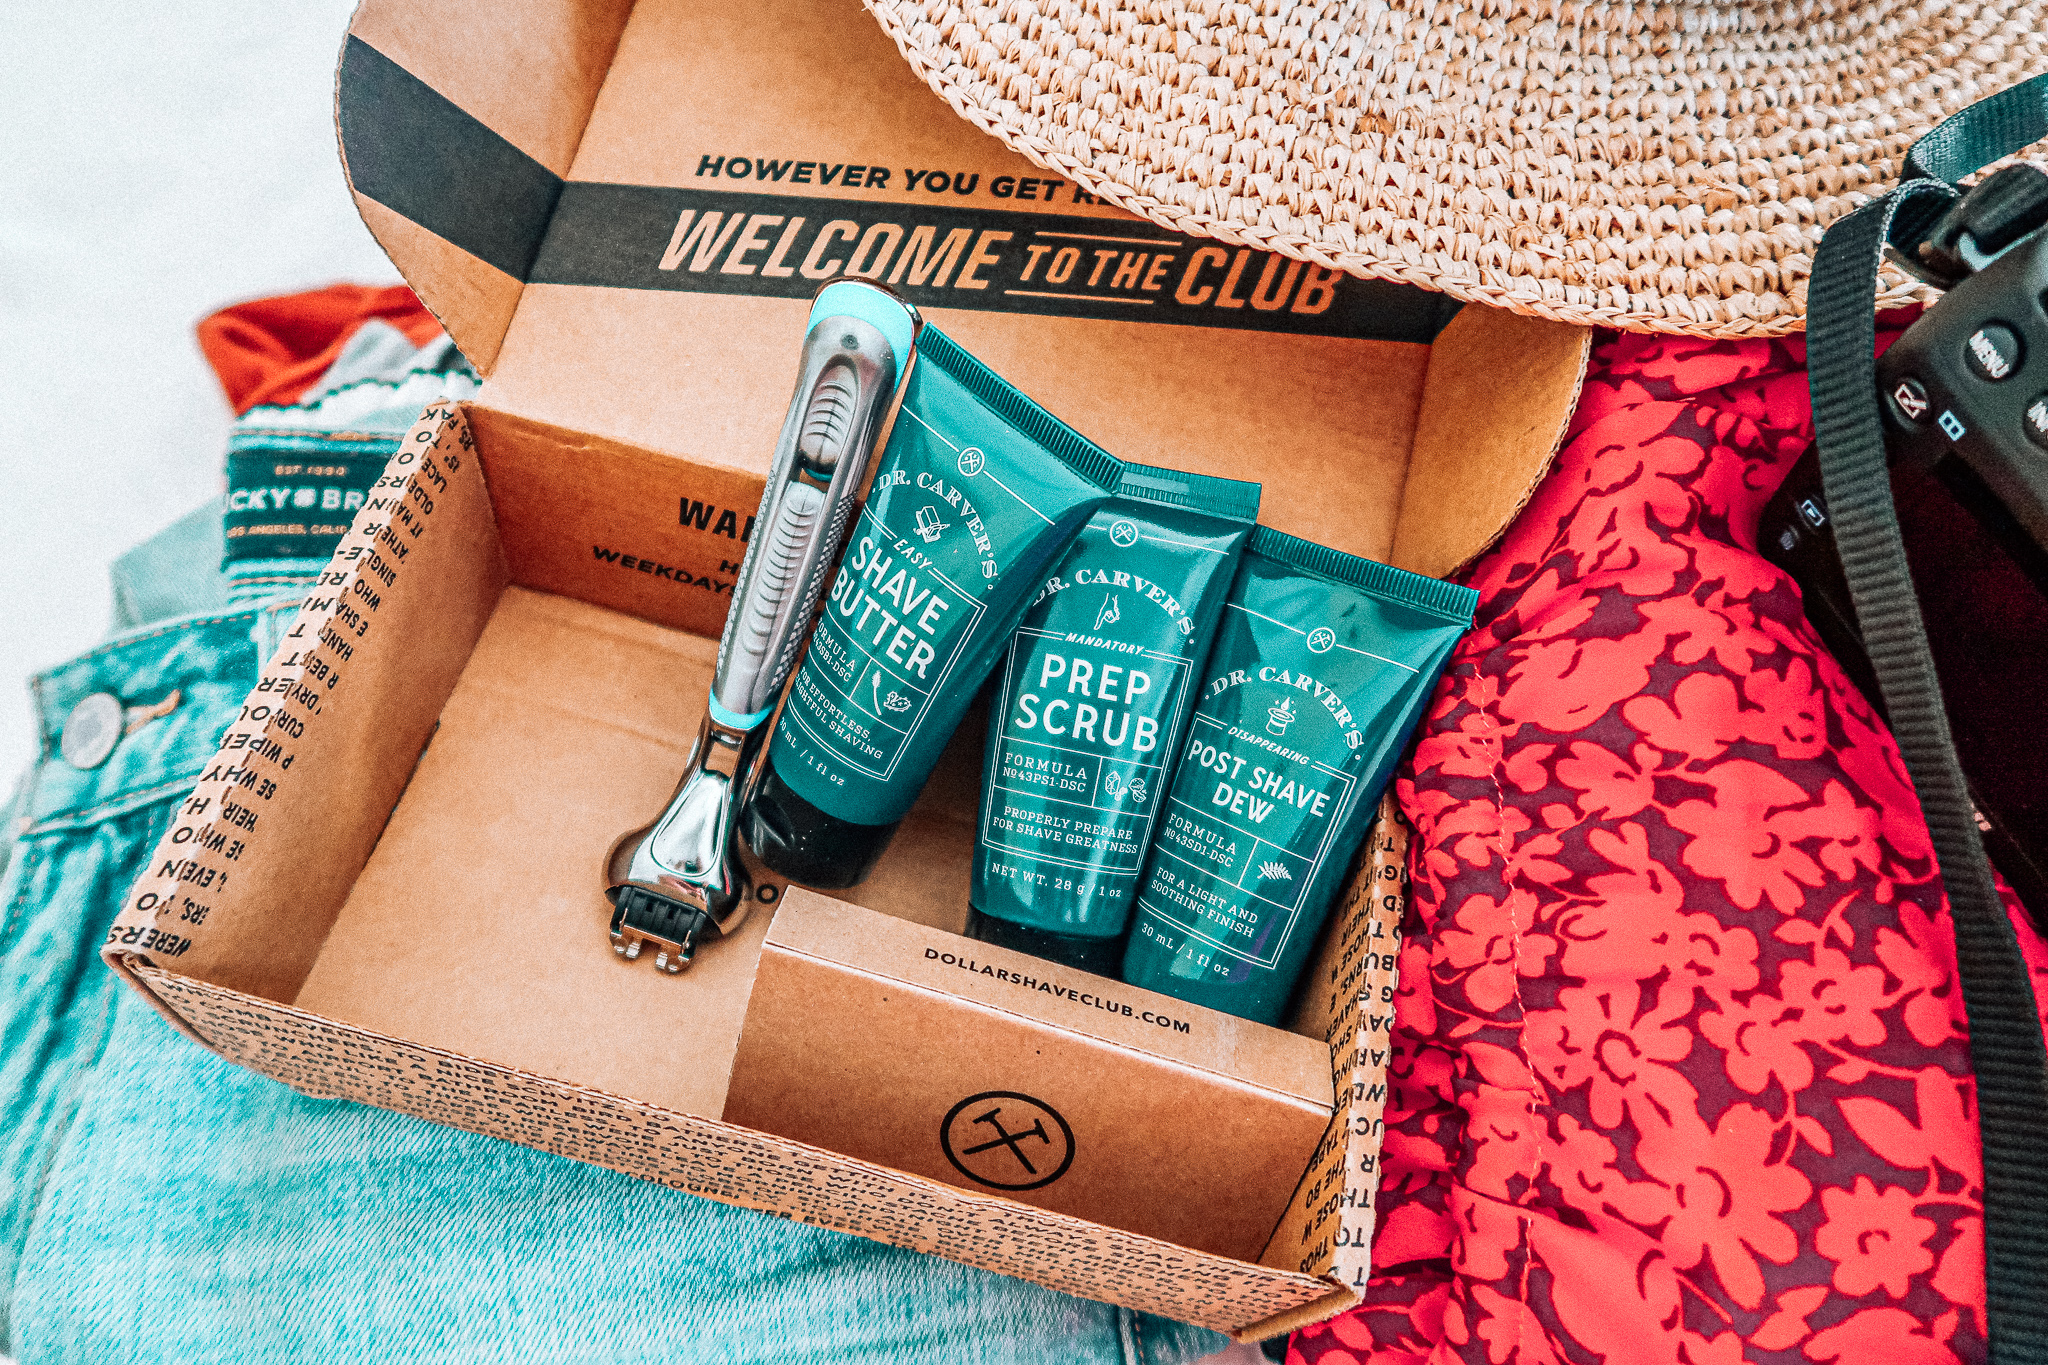 dollar shave club, shaving cream, products, shave butter, post shave, shaving your legs, self care, routine, lifestyle, bath,